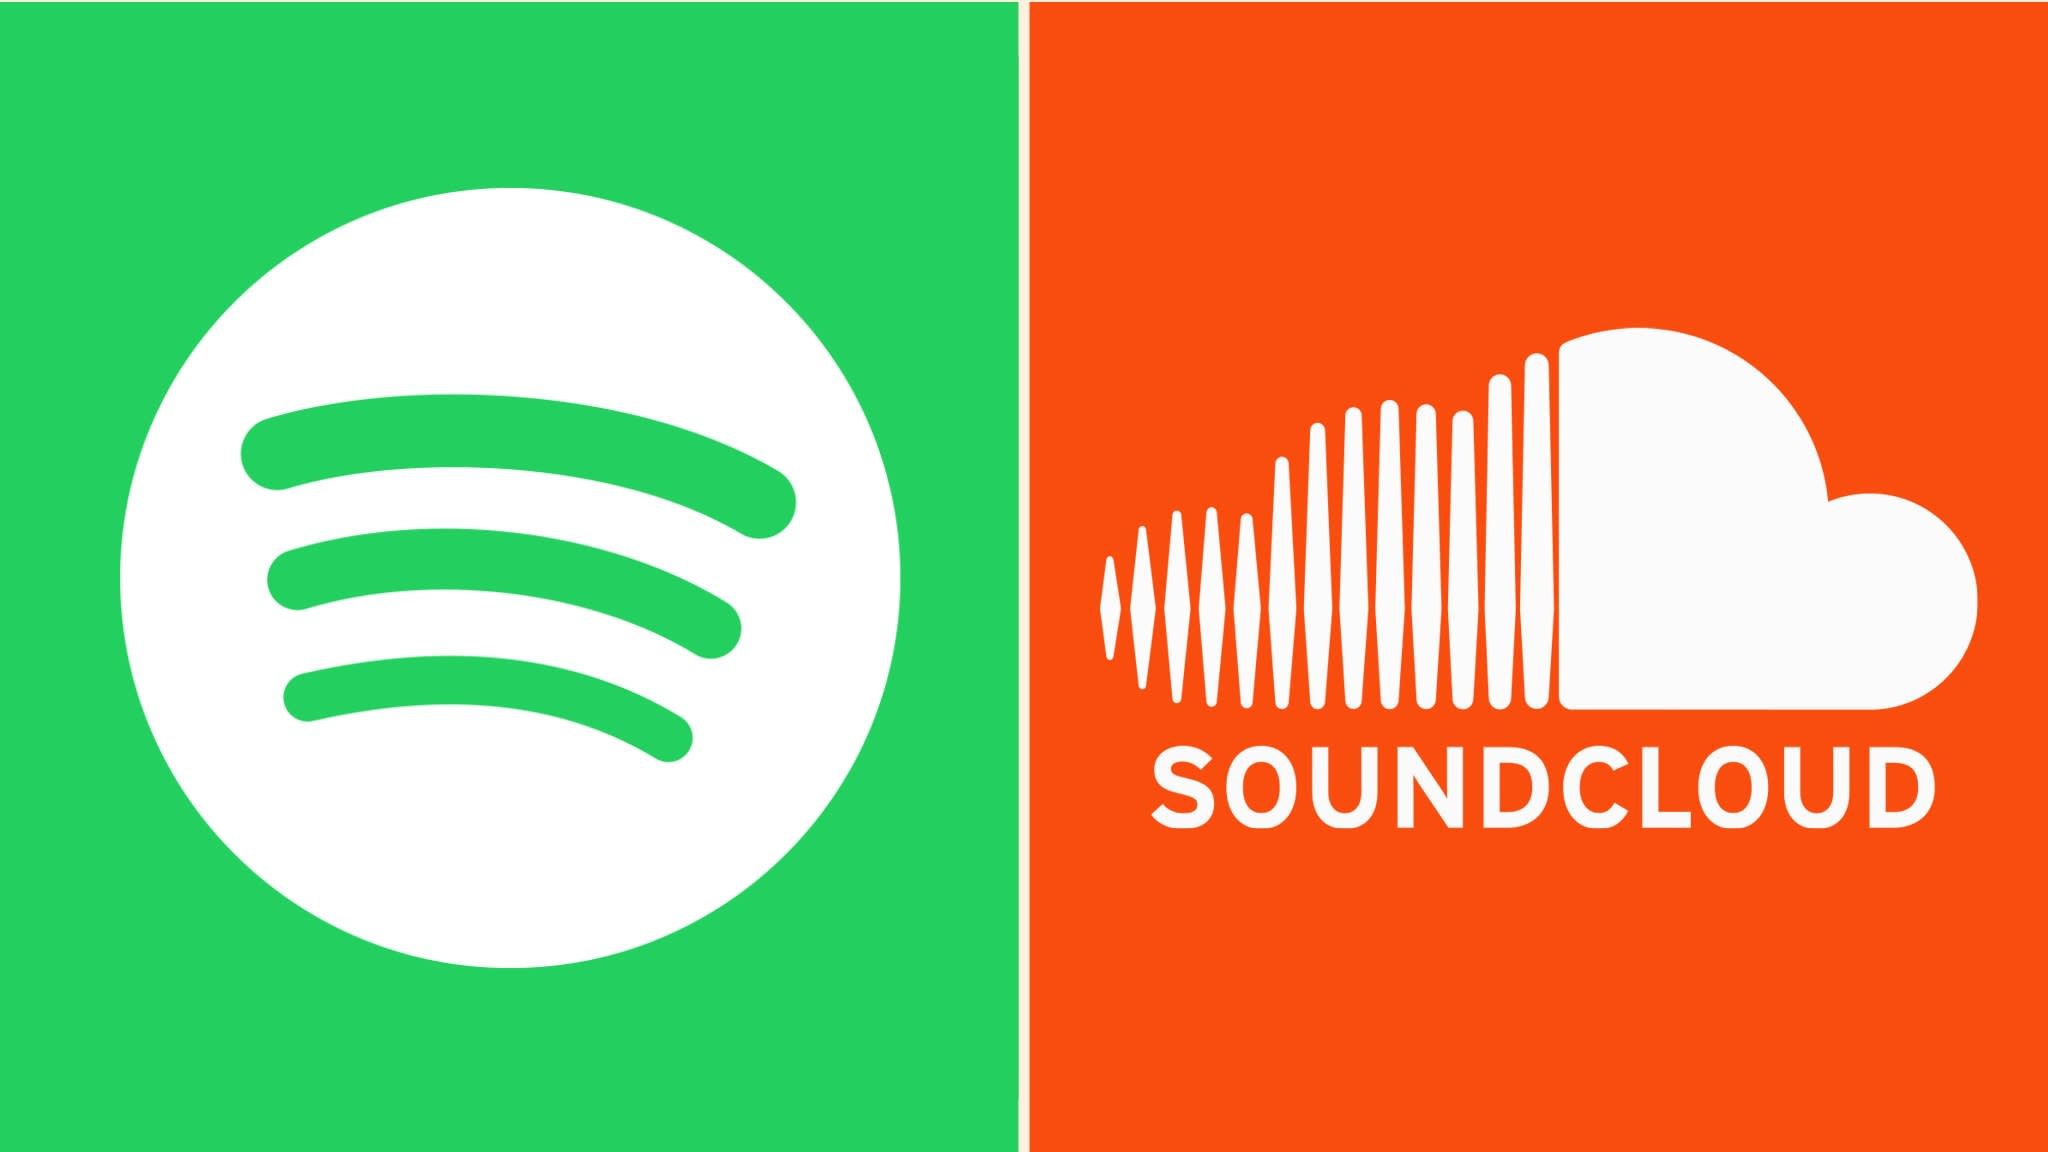 Spotify in advanced talks to buy SoundCloud